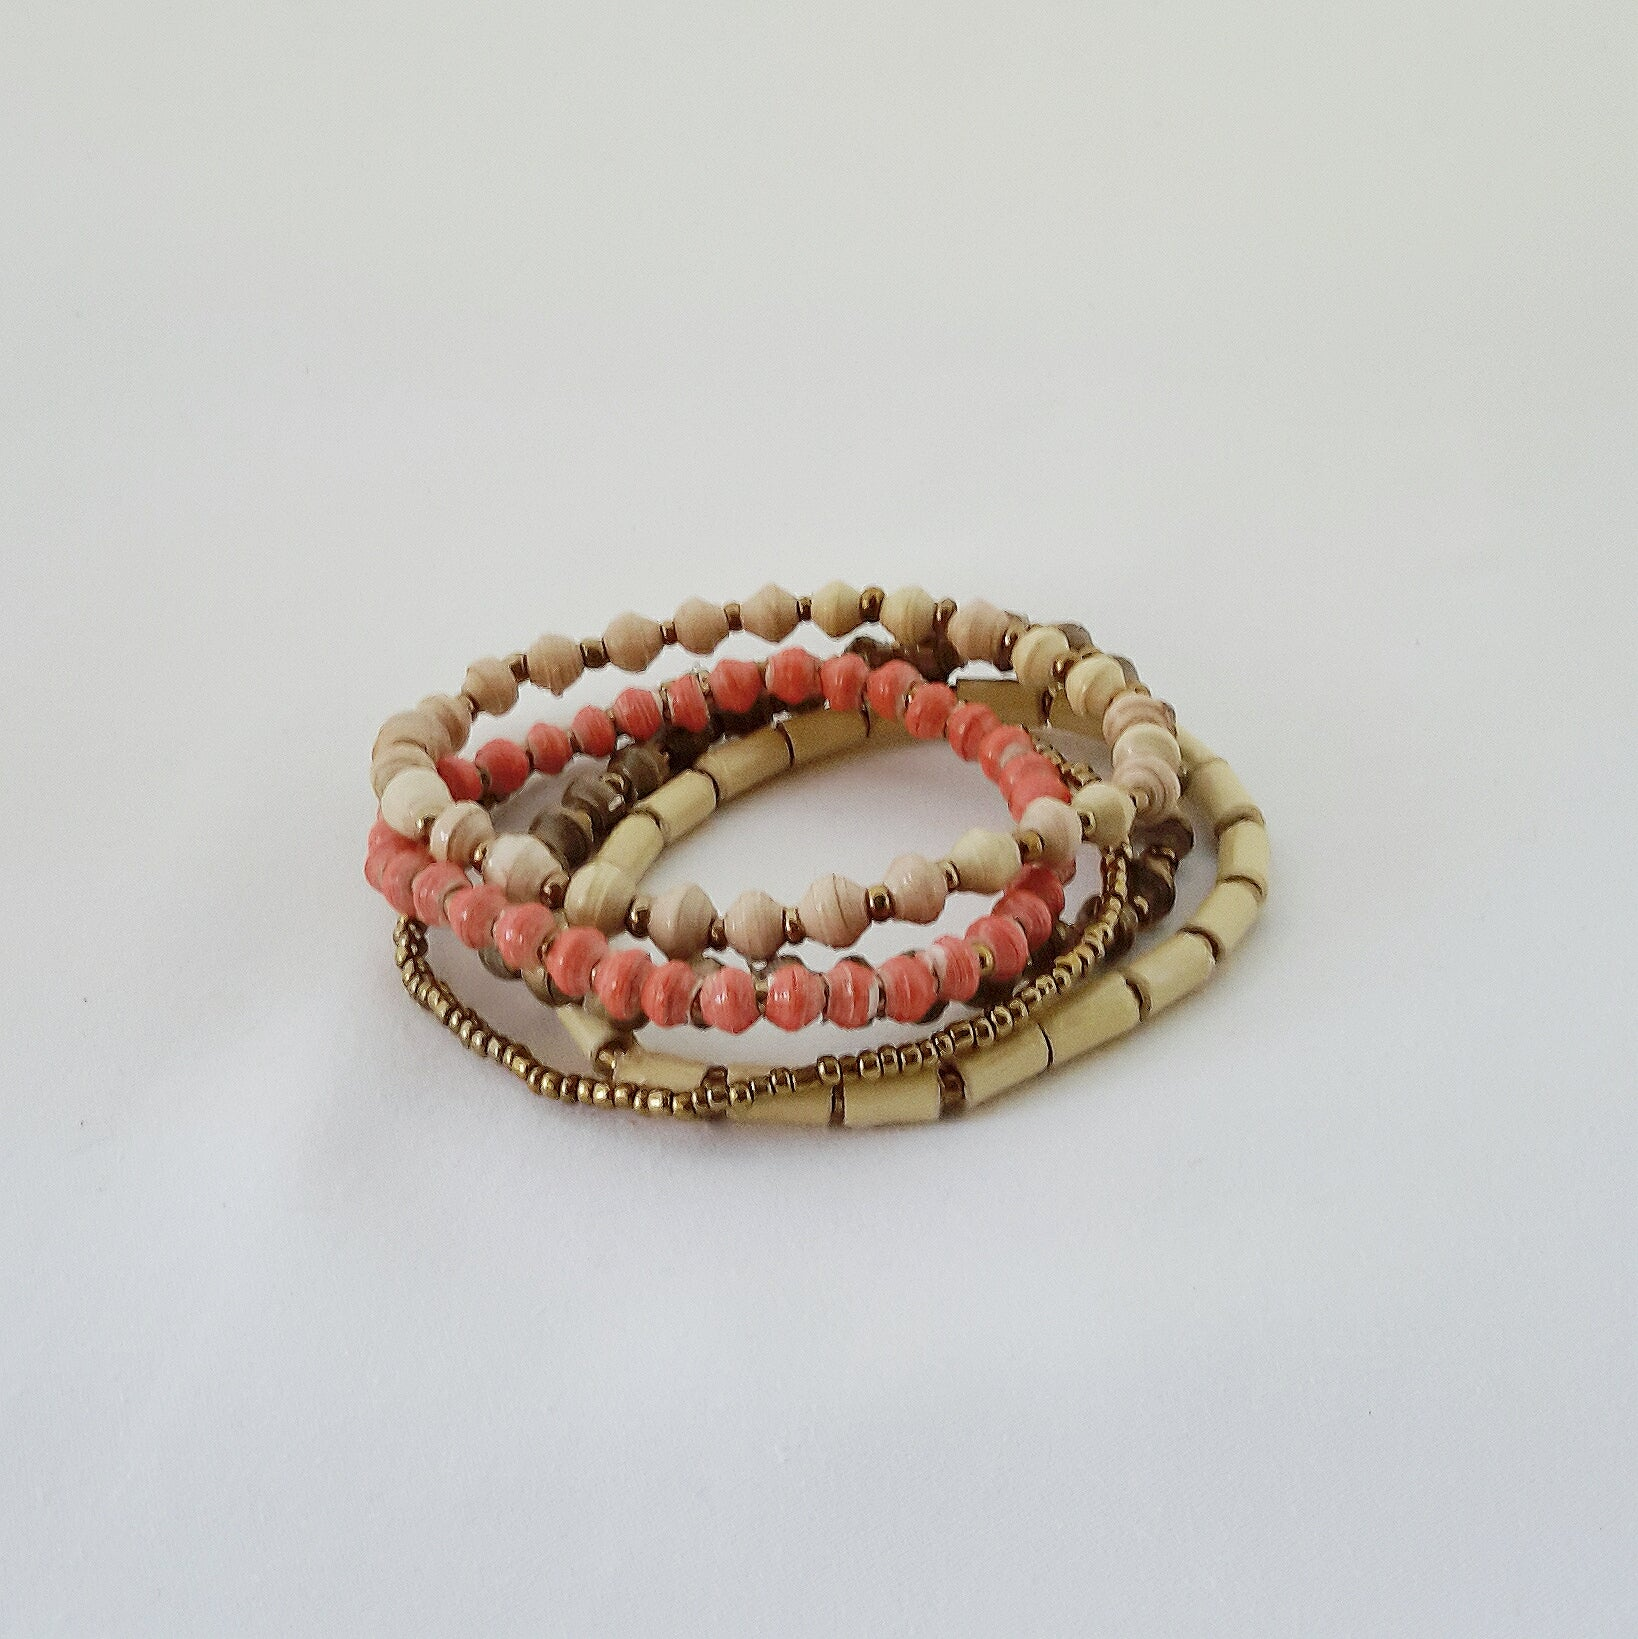 Coral pink ethical hand made design paper bead bracelet made out of recycled paper in Uganda by principles of fair trade, ethical and sustainable fashion, empowering women of post war area, by Finnish / Scandinavian brand, Agulu Paper Beads. Eettinen korallinpunainen käsintehty design rannekoru, joka on tehty kierrätyspaperista reilun kaupan periaattein työllistämällä Ugandalaisia nasia.